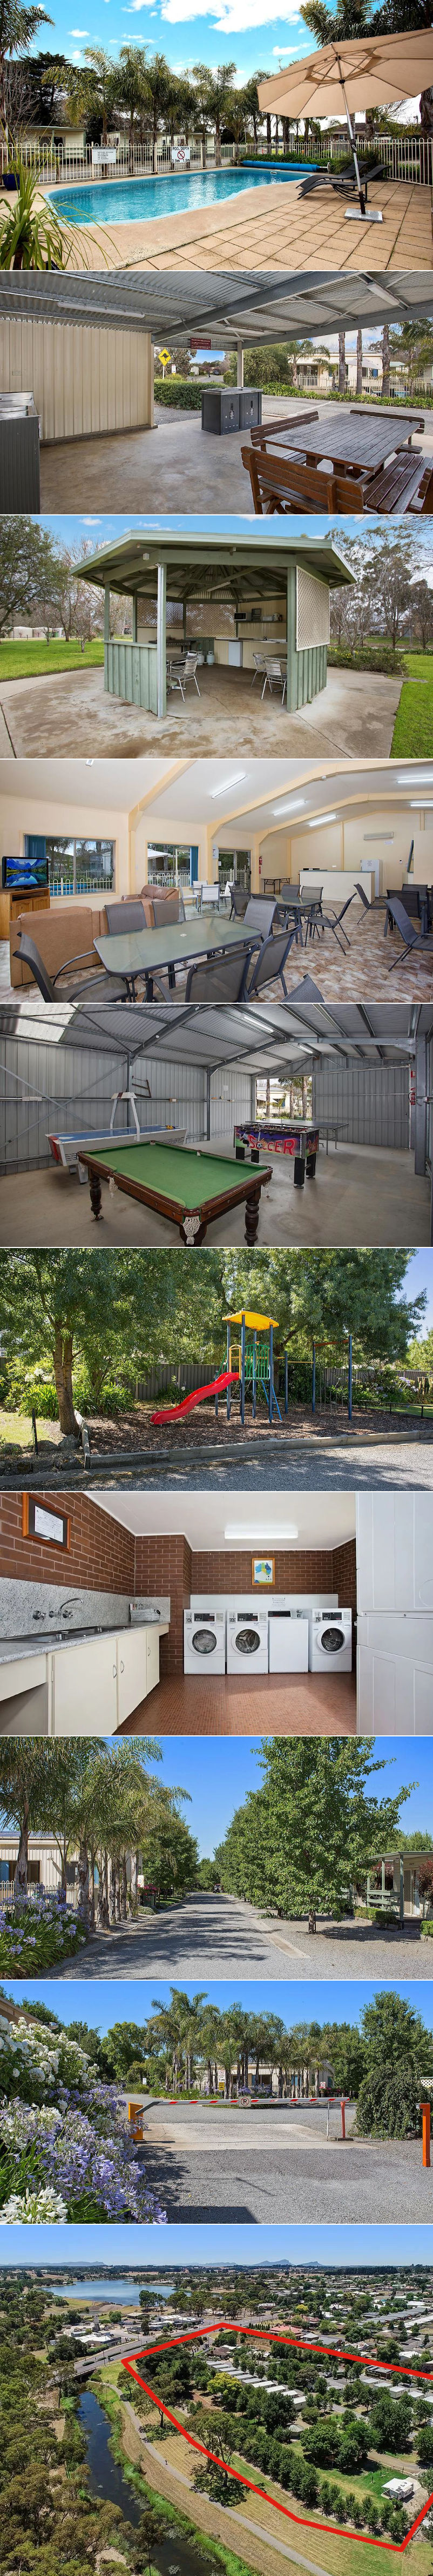 Lake Hamilton Motor Village & Caravan Park - Grounds and facilities